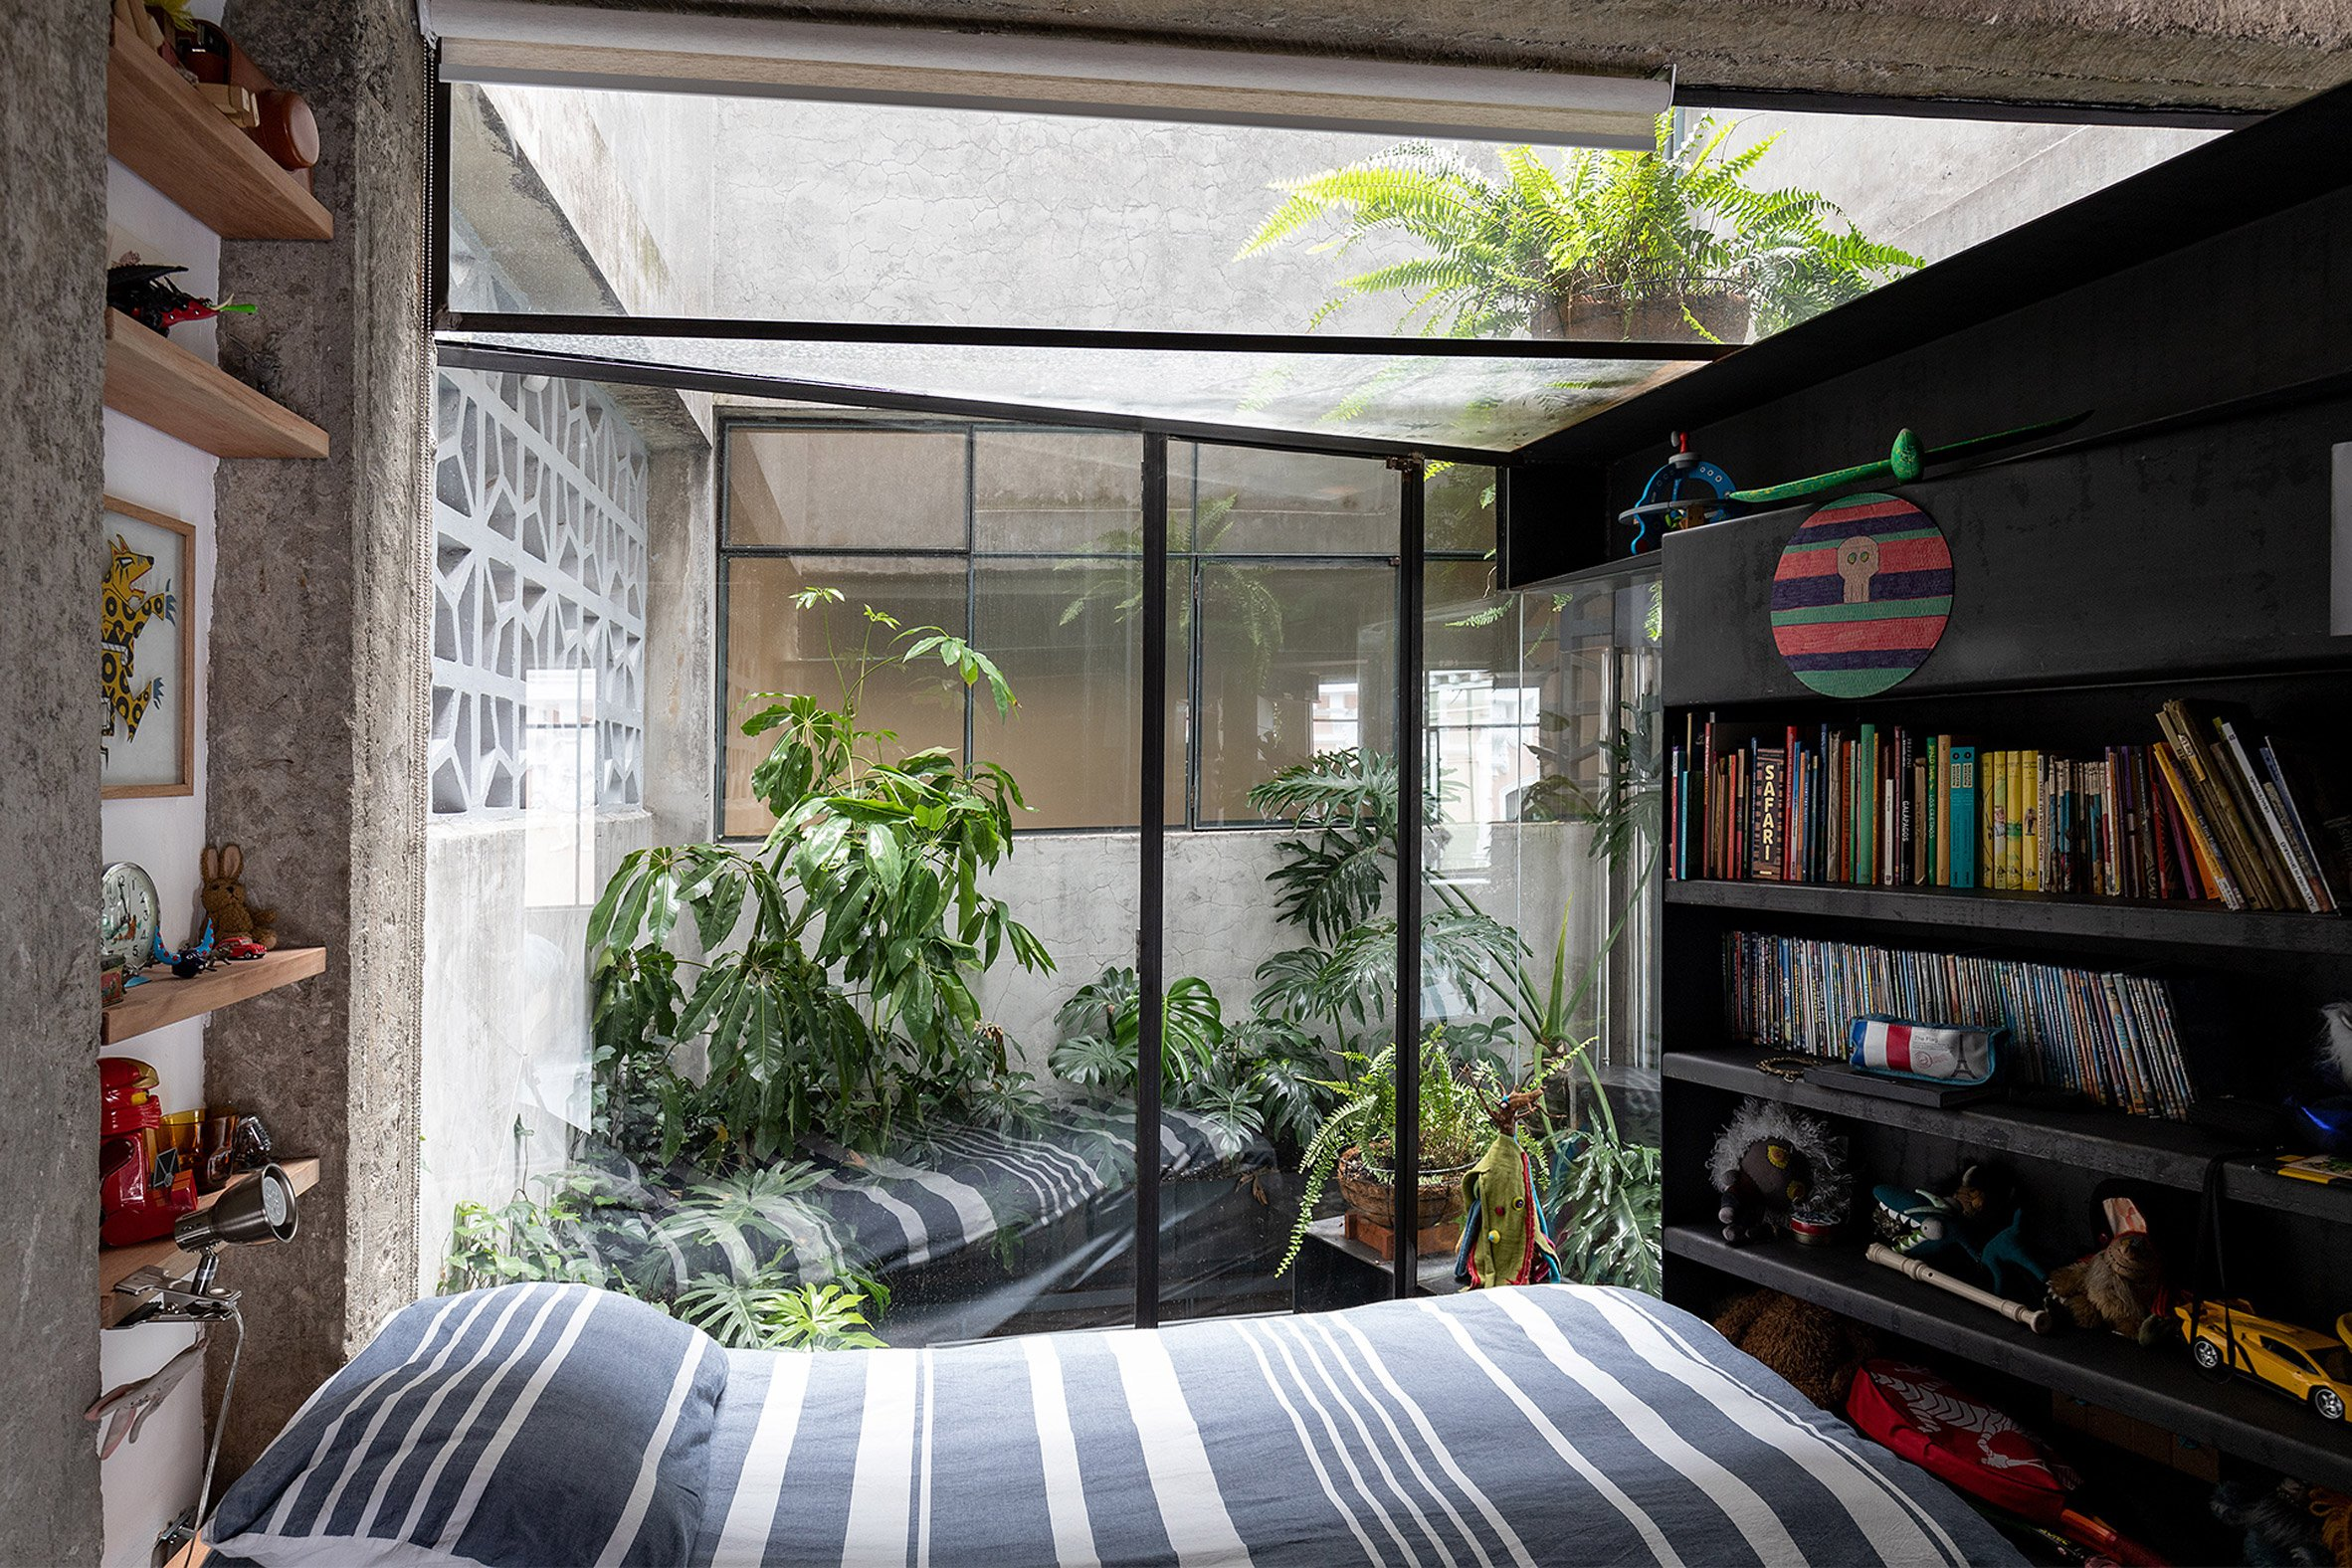 A bedroom overlooking a plant-filled courtyard